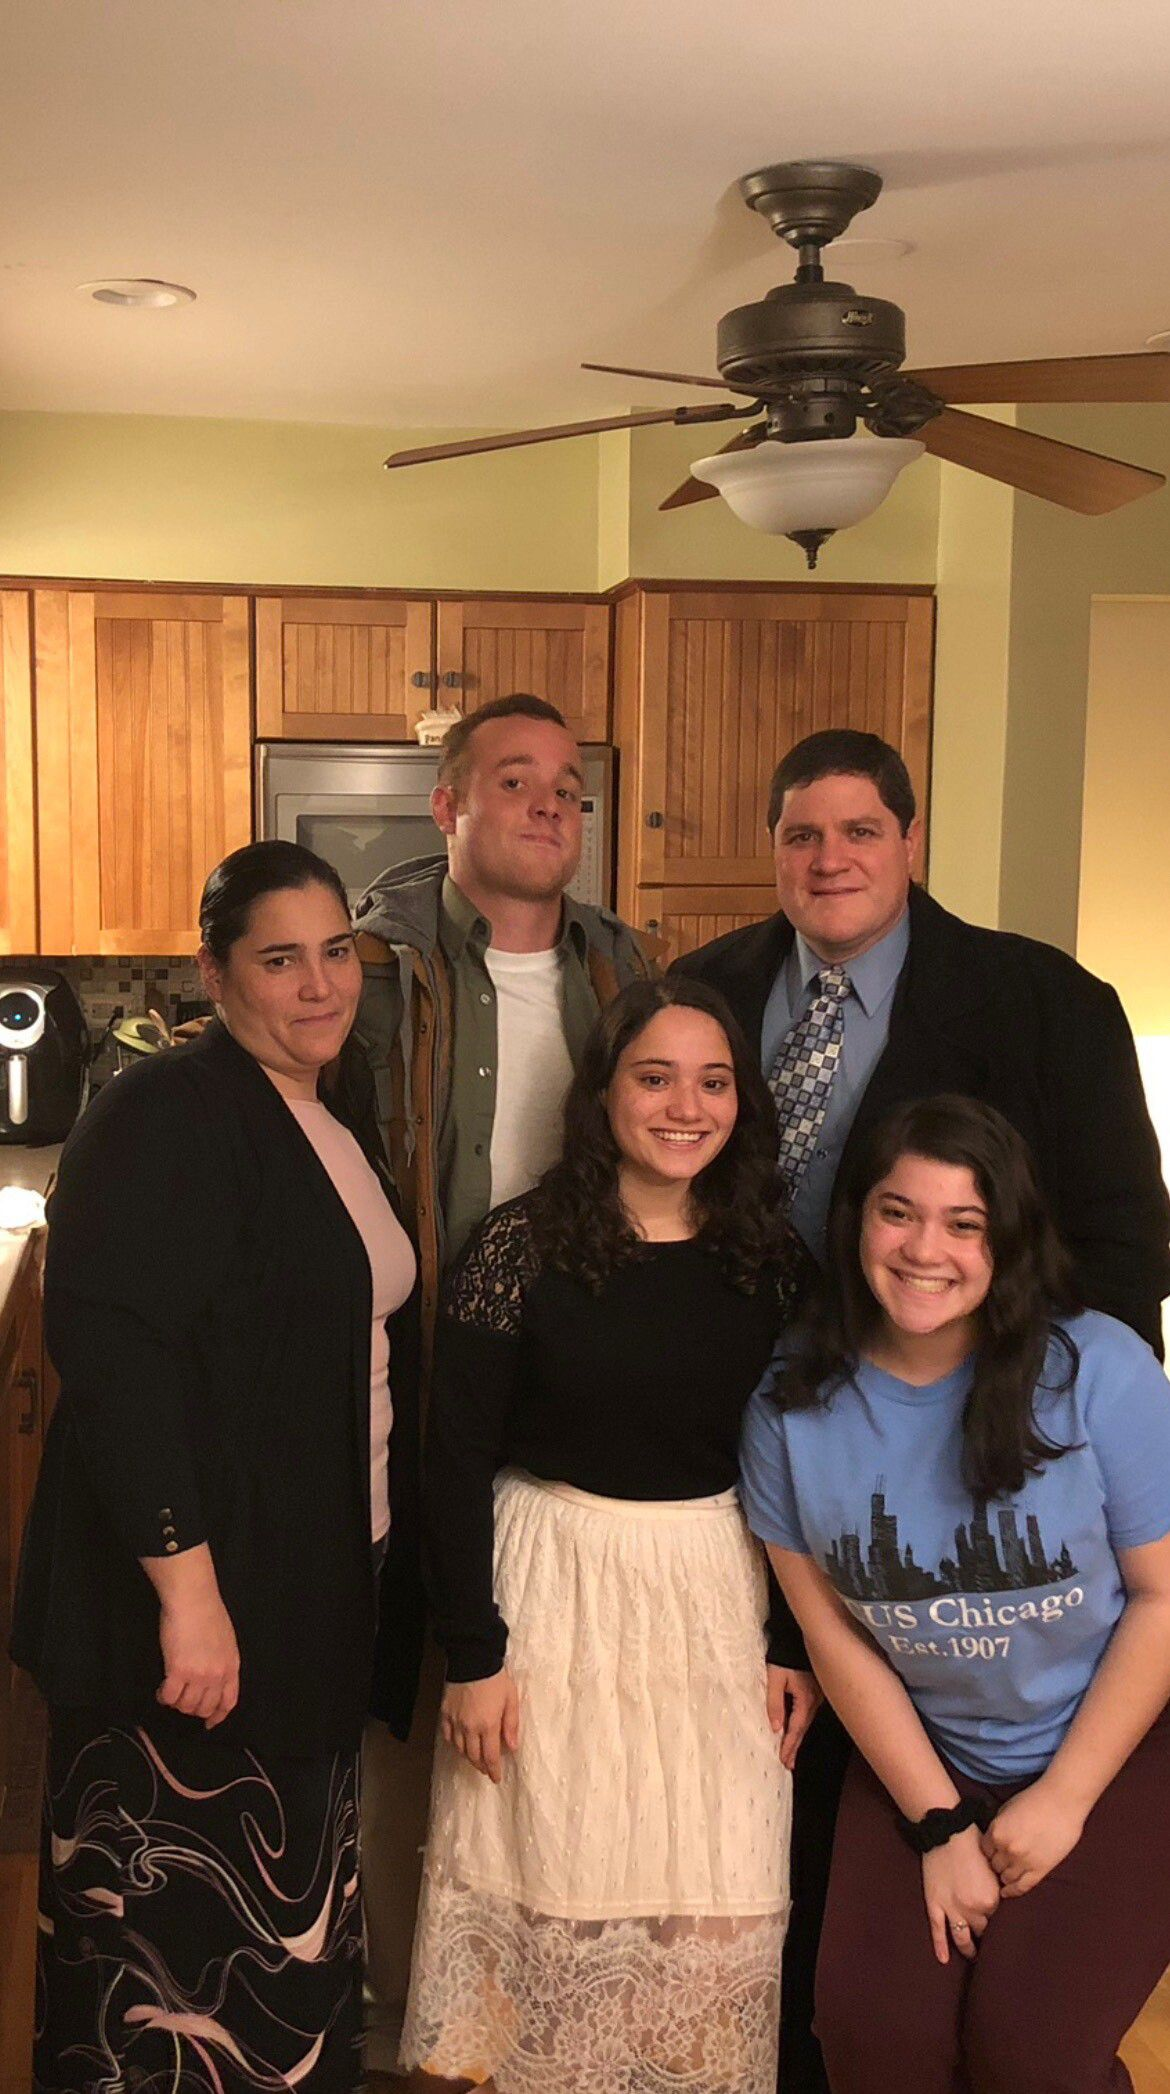 A family photo from when Edgar Tirado Jr. visited his parents' home in the Chicago suburbs.